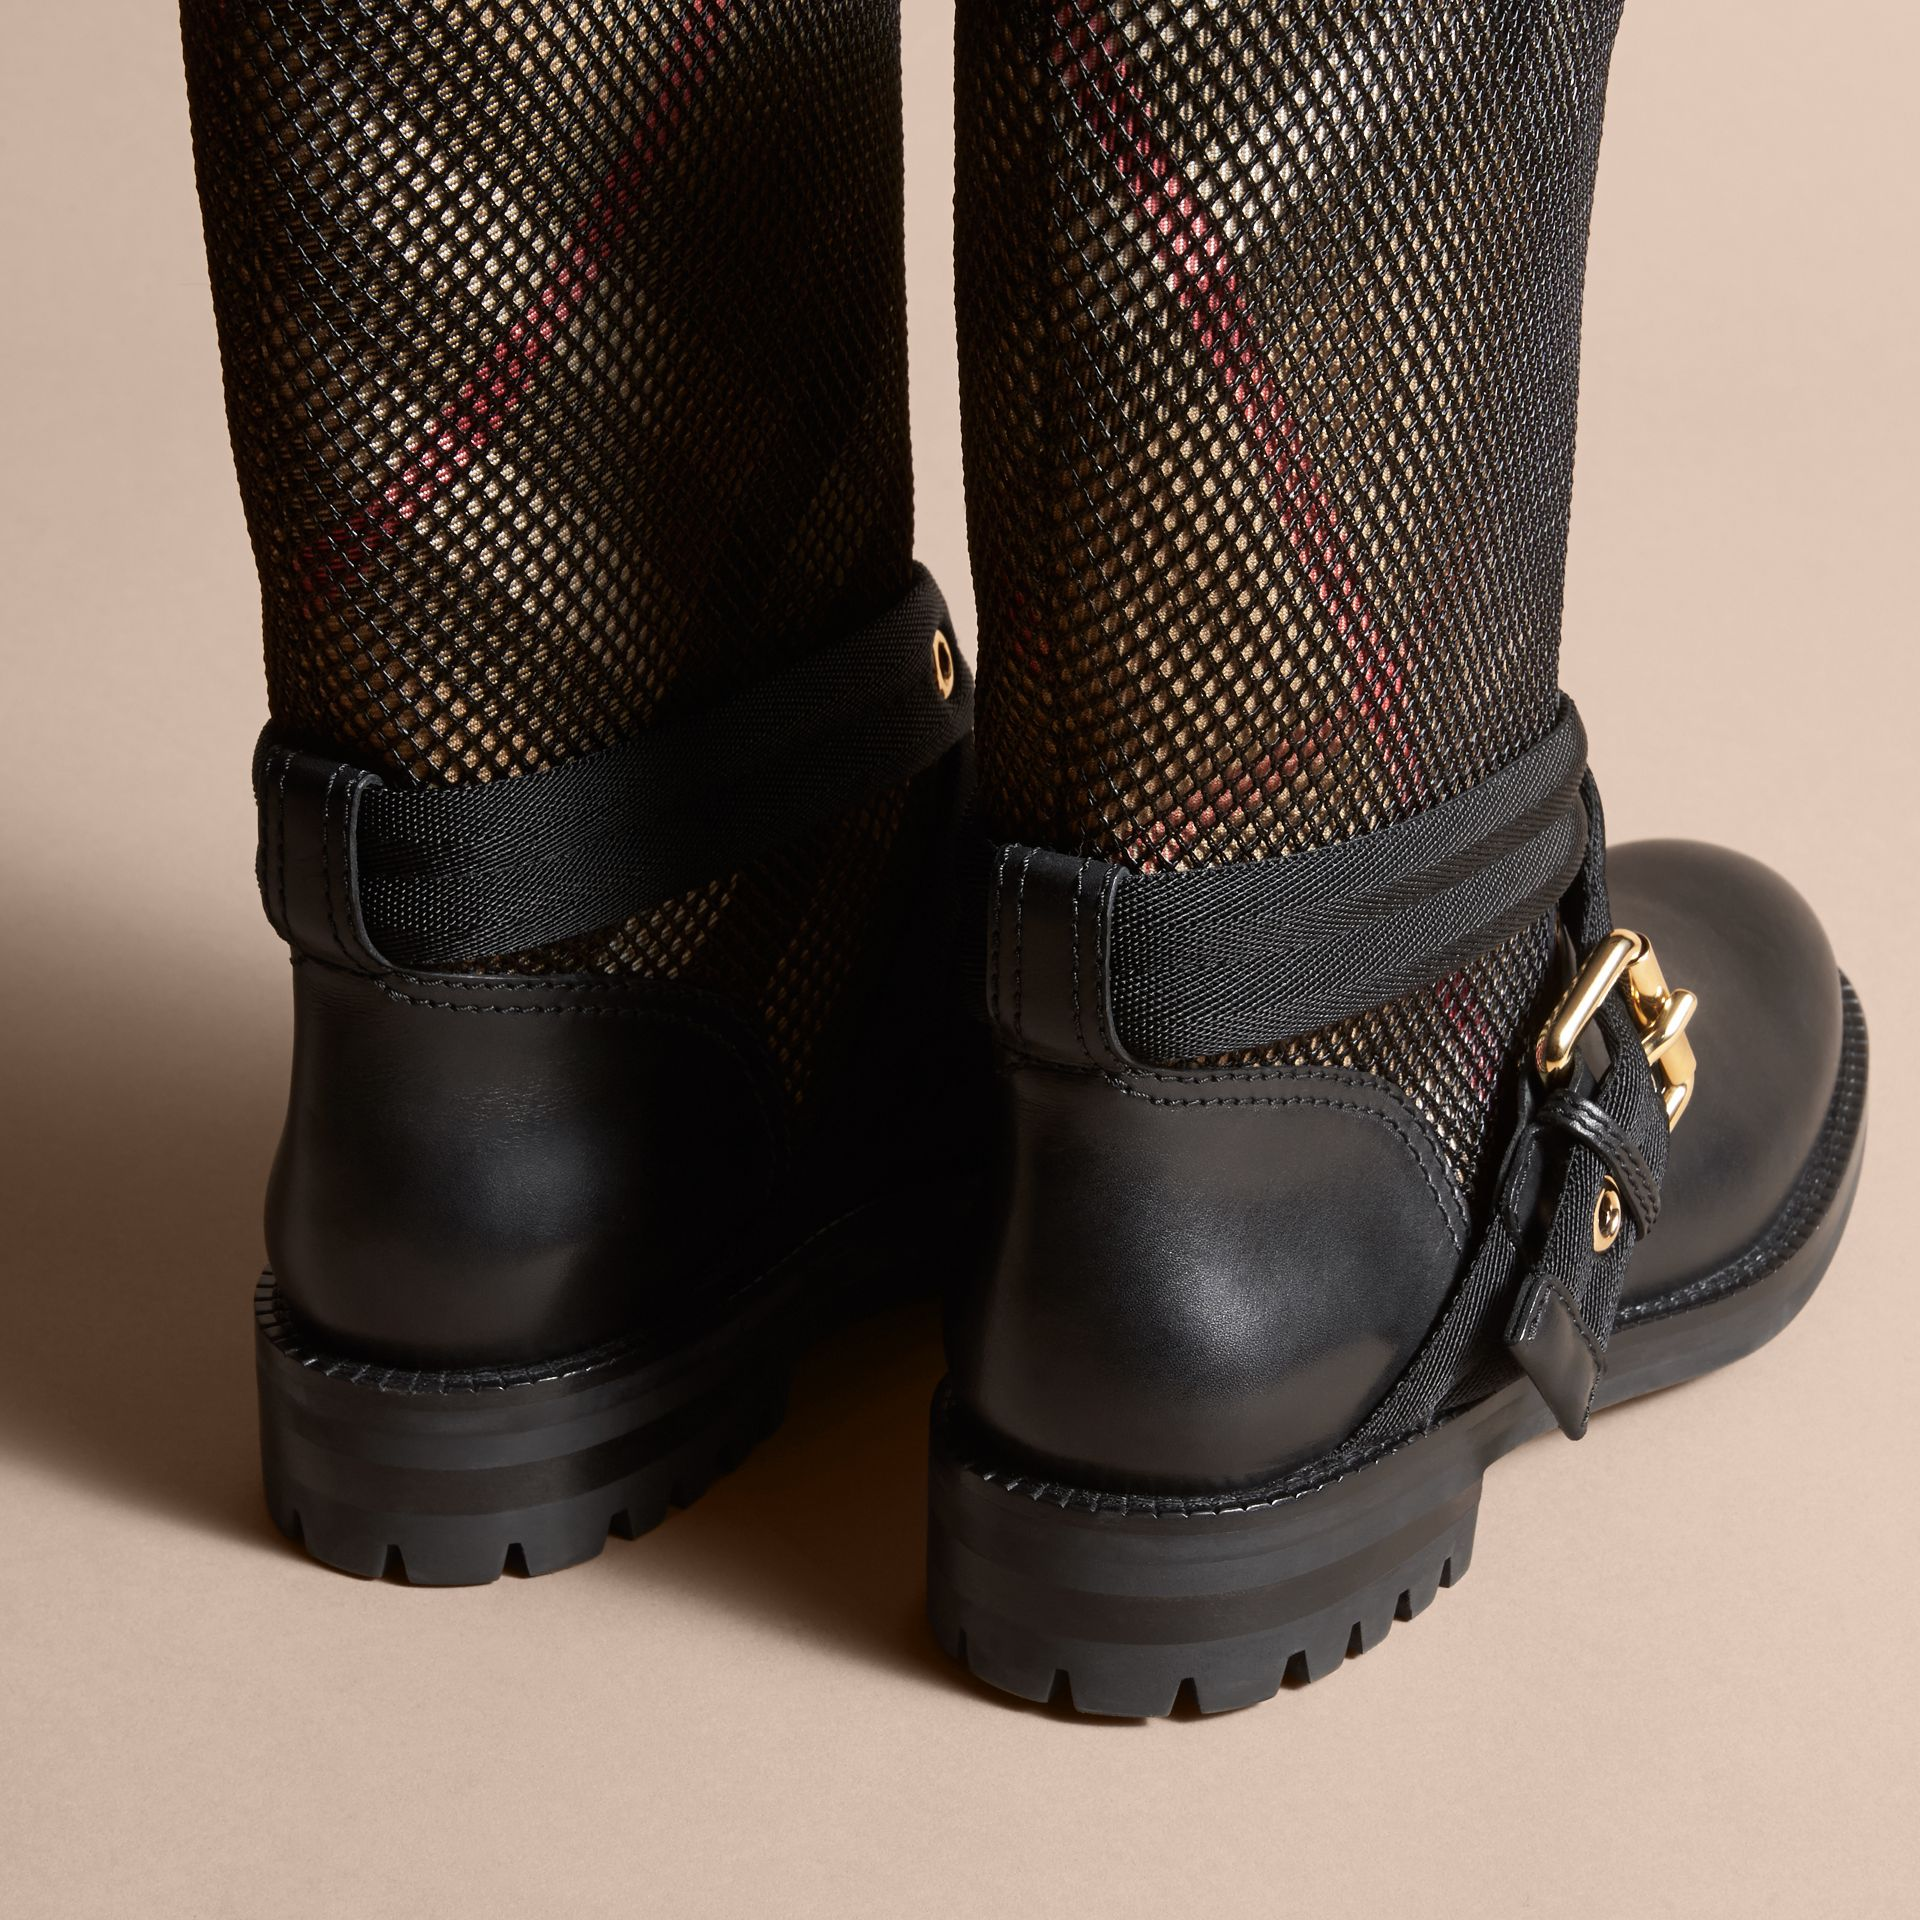 Leather, Mesh and House Check Boots in Black - Women | Burberry - gallery image 4